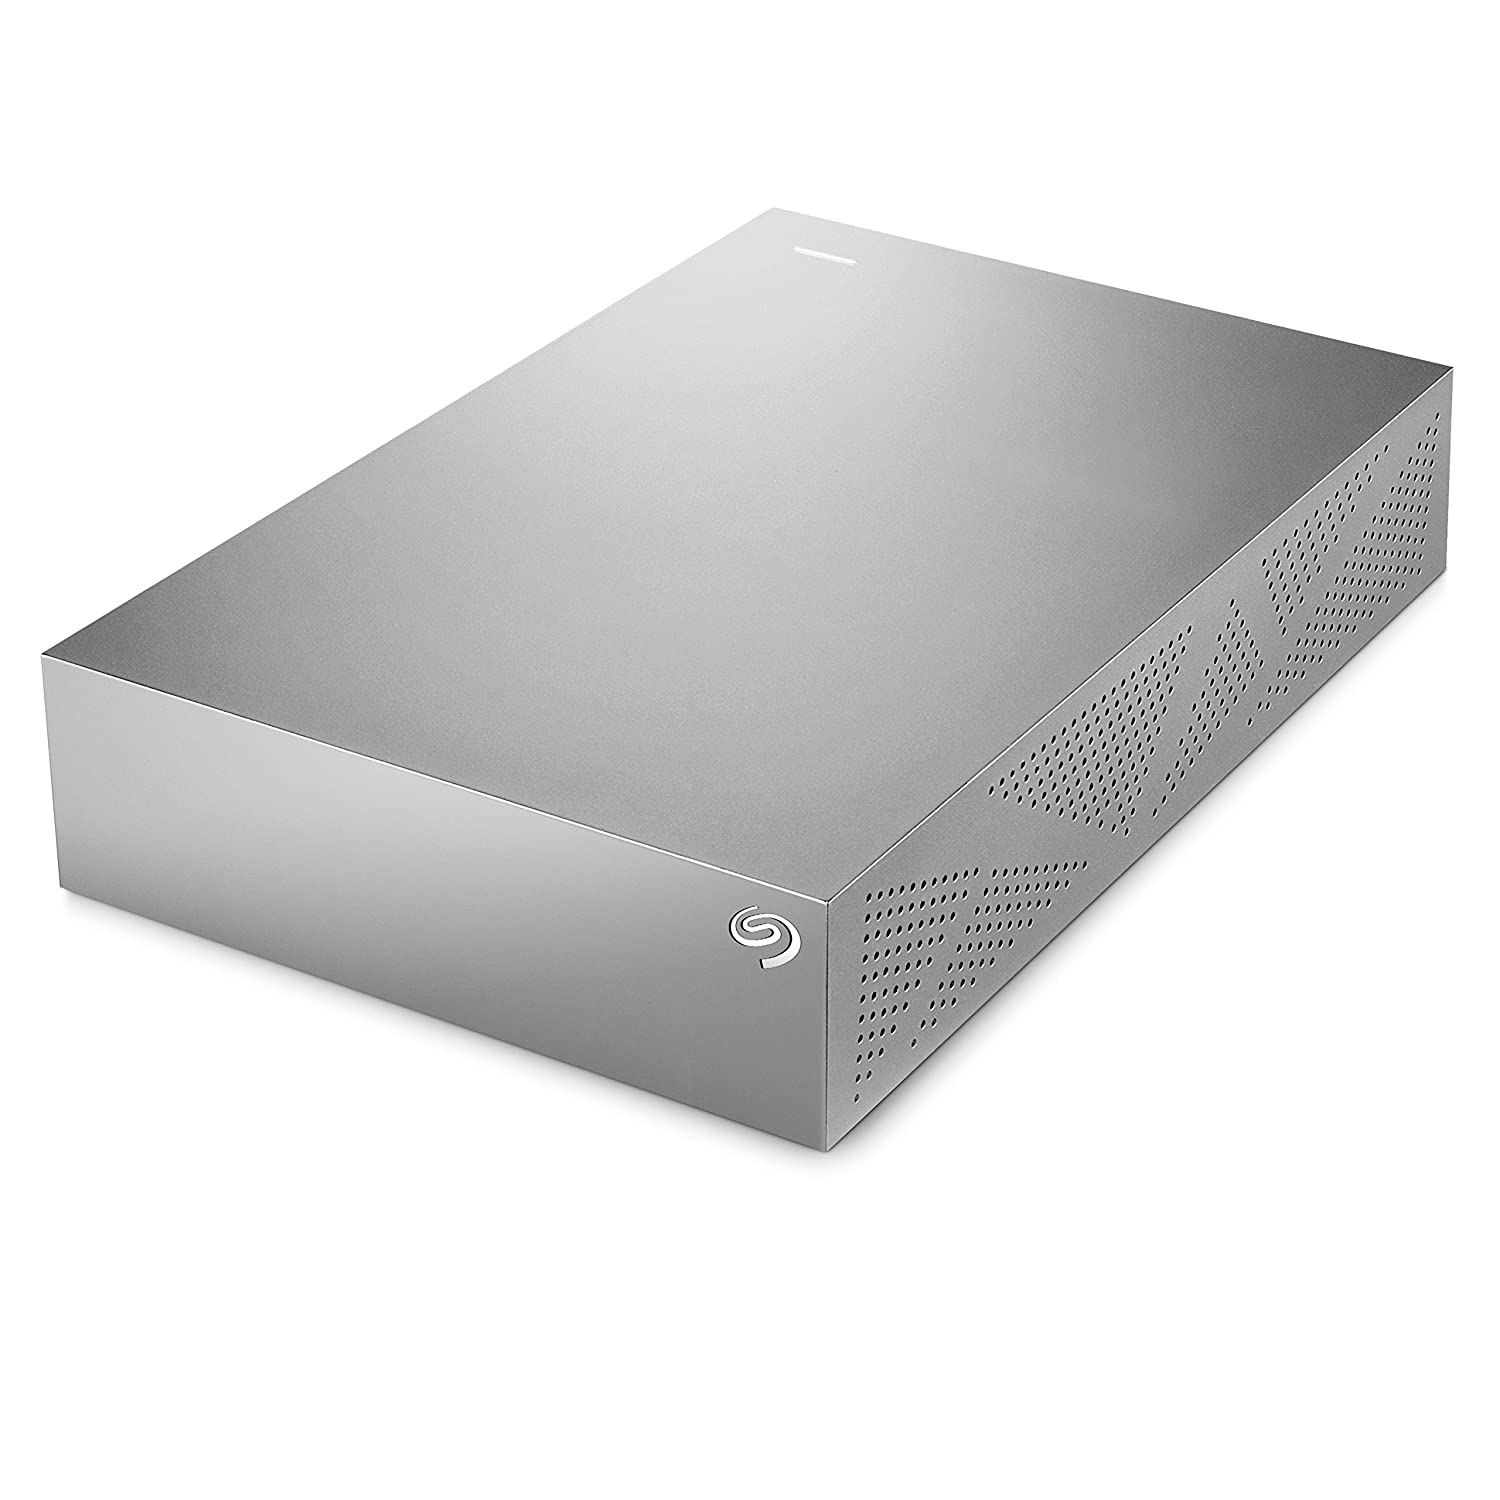 Seagate STEL6000200 Backup Plus Hub 6 TB Externe Desktop Festplatte (8,89 cm (3,5 Zoll) mit eingebauten Hub, inkl. Backup Software und 2 Monate Adobe Creative Cloud Photography Plan)